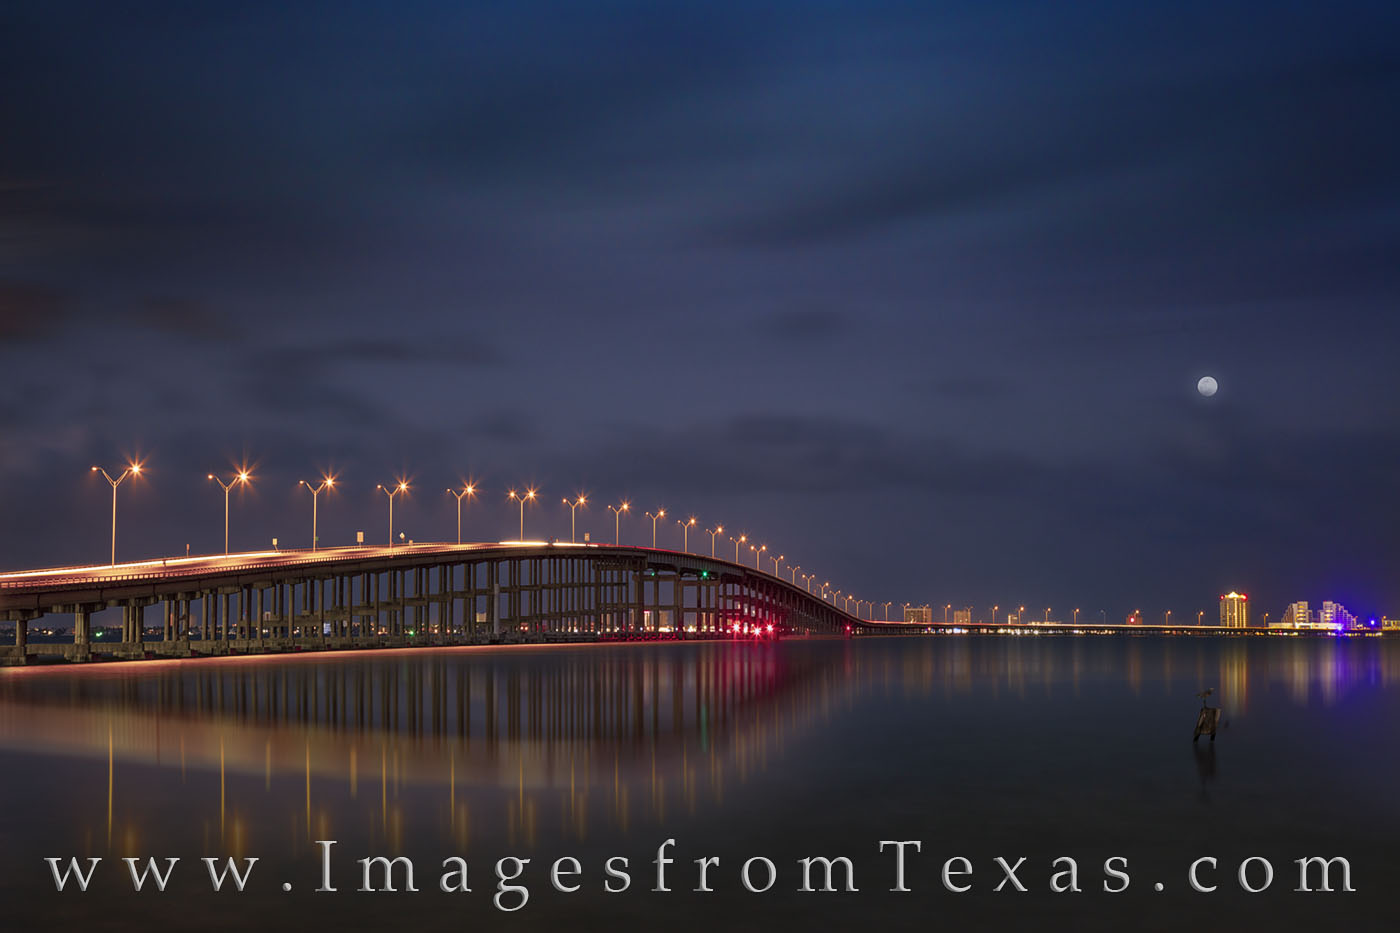 queen isabel causeway, bridge, laguna madre, south padre island, port isabel, night, heron, bird, lights, south texas, highway, photo